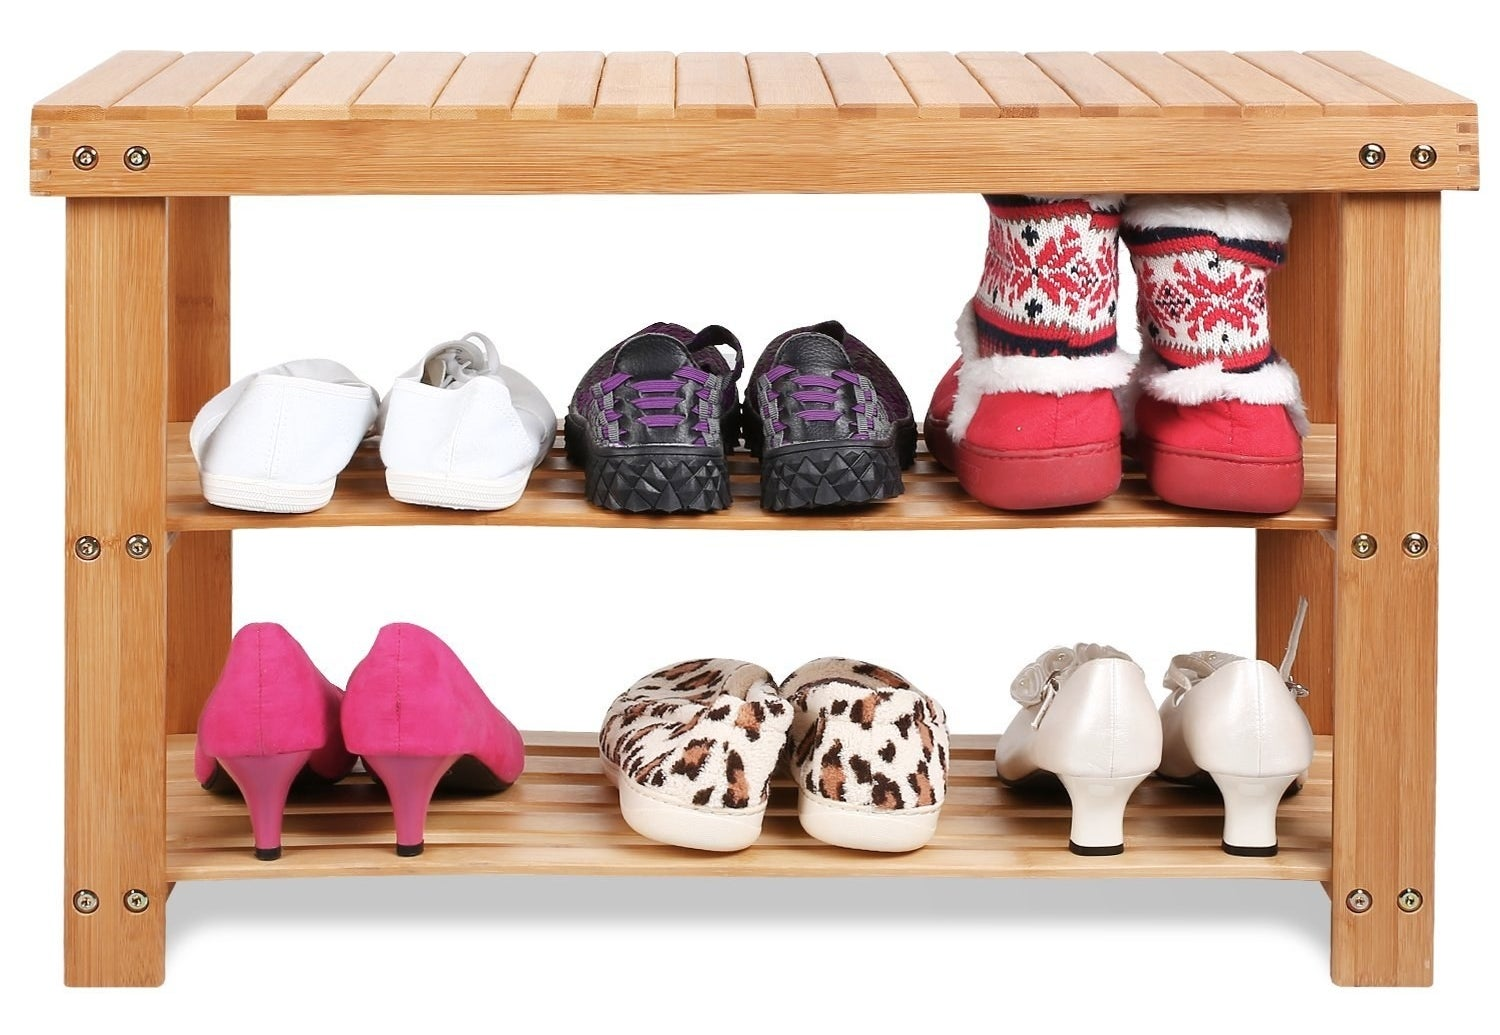 Get the shoe bench here.